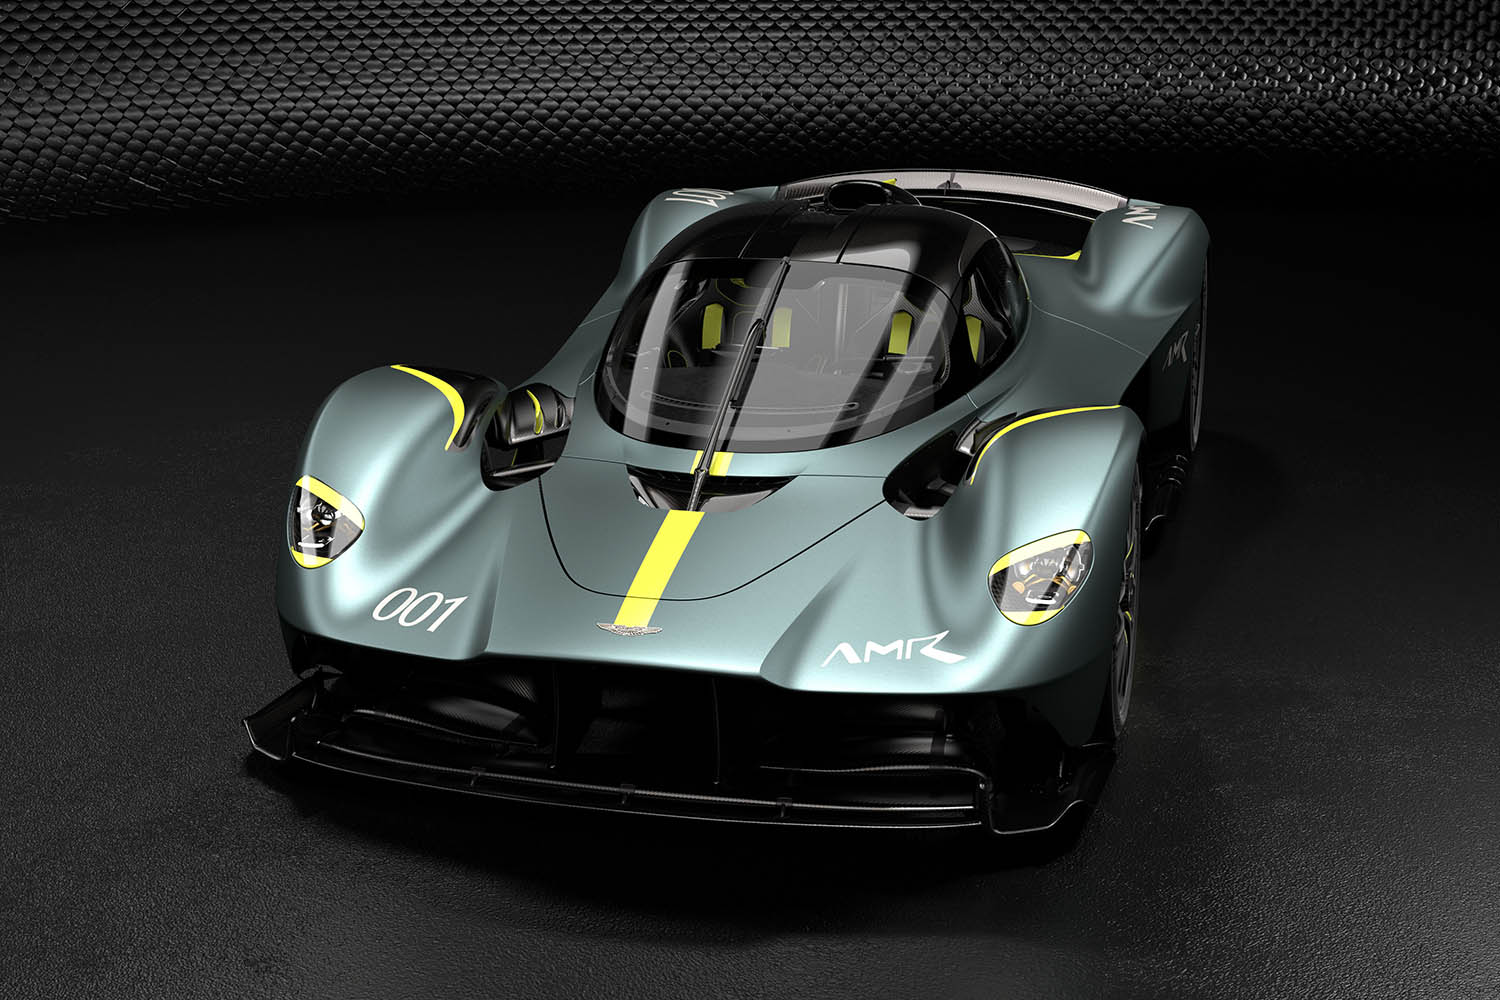 Aston Martin Valkyrie with AMR Track Performance Pack - Stirling Green and Lime livery (1).jpg